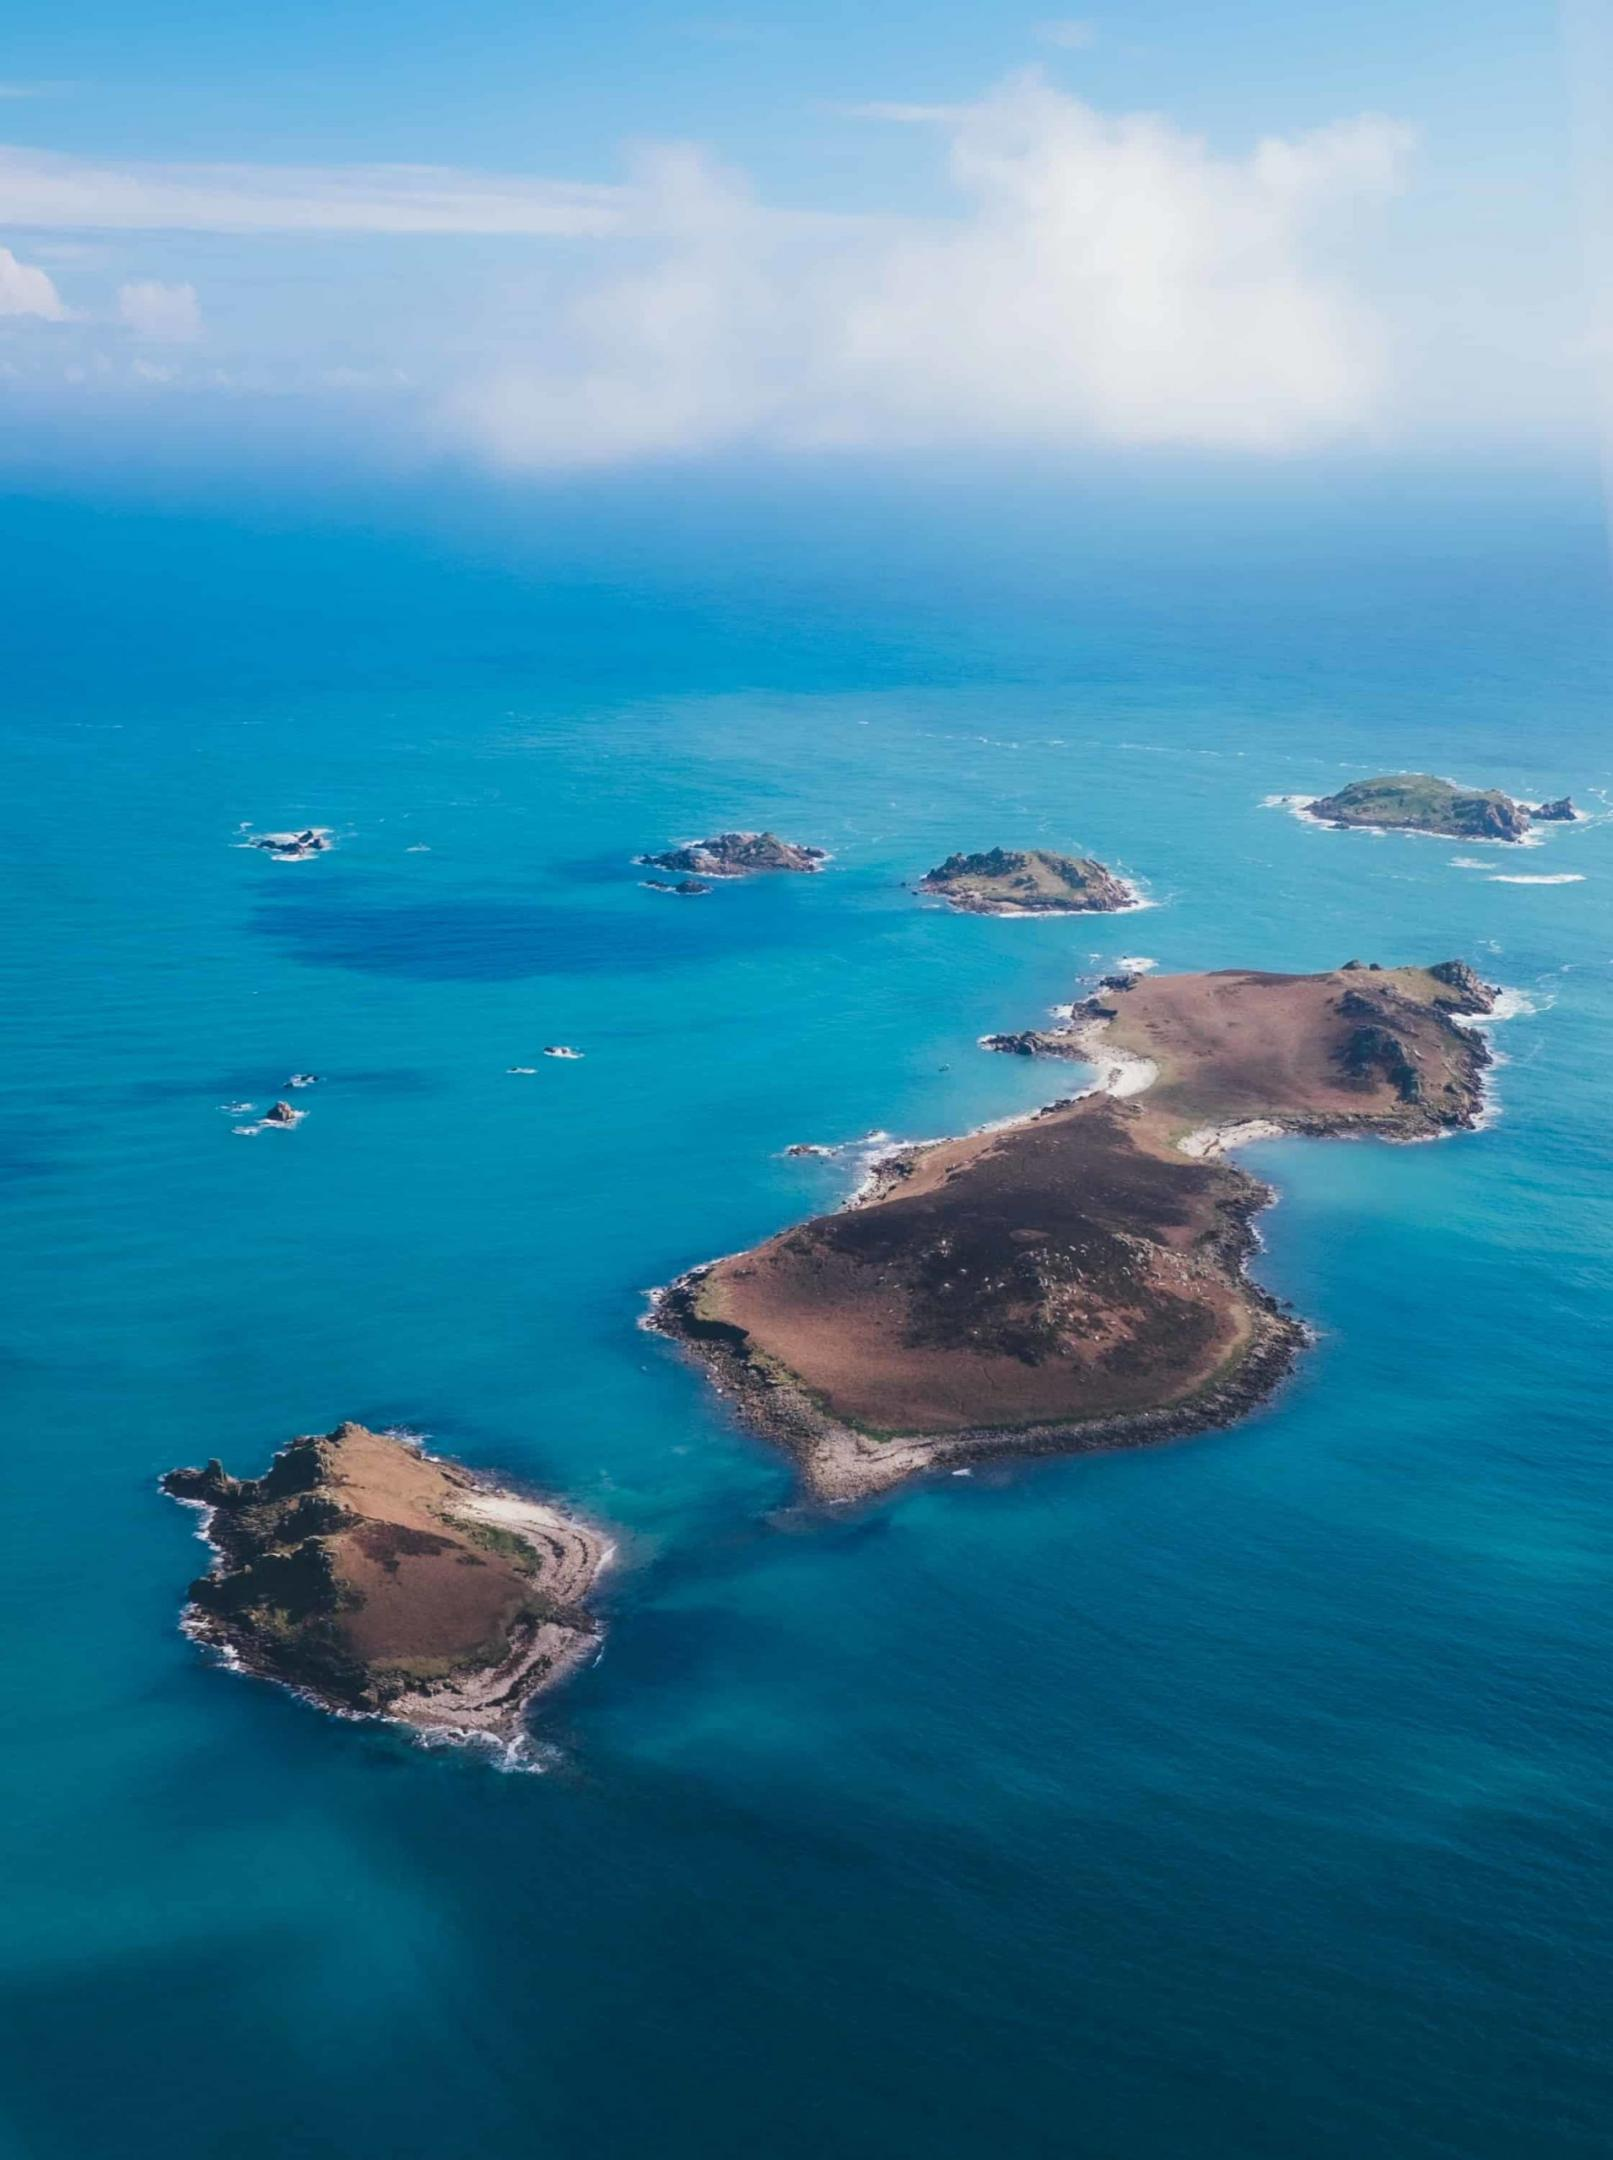 Aerial photo of the Isles of Scilly